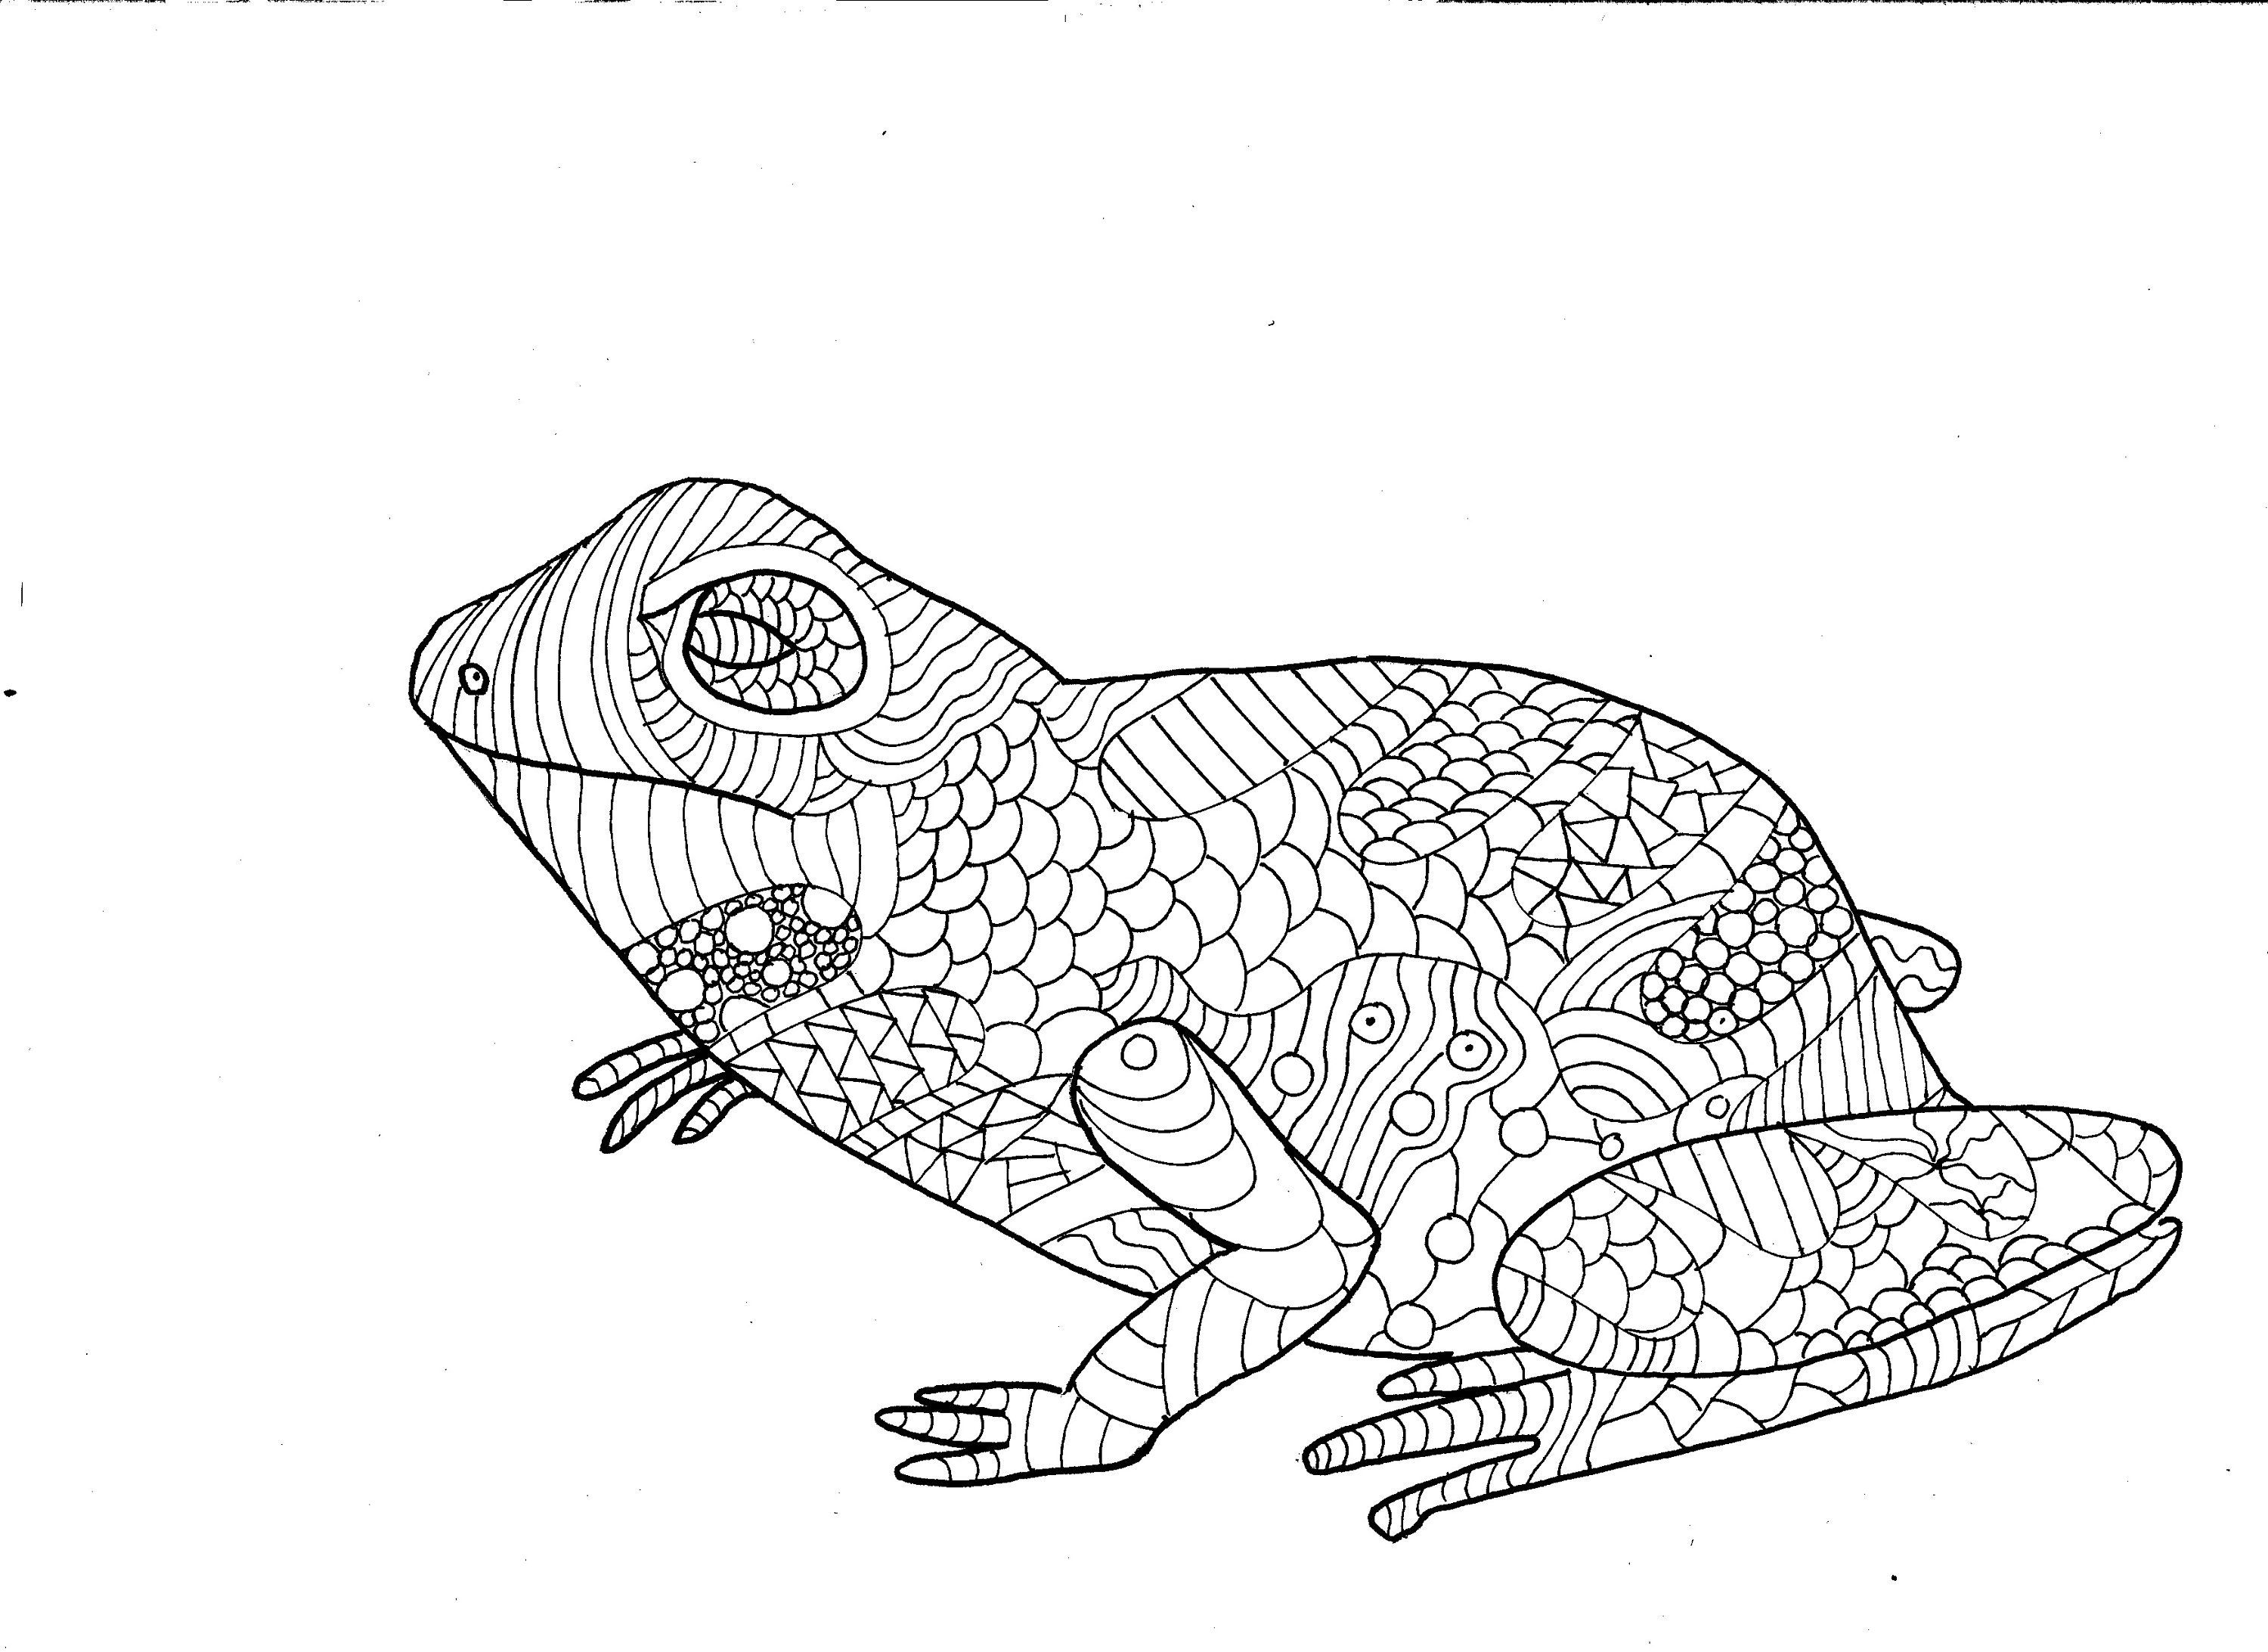 Frog Colouring Page Sitting Frog Adult Colouring Digital